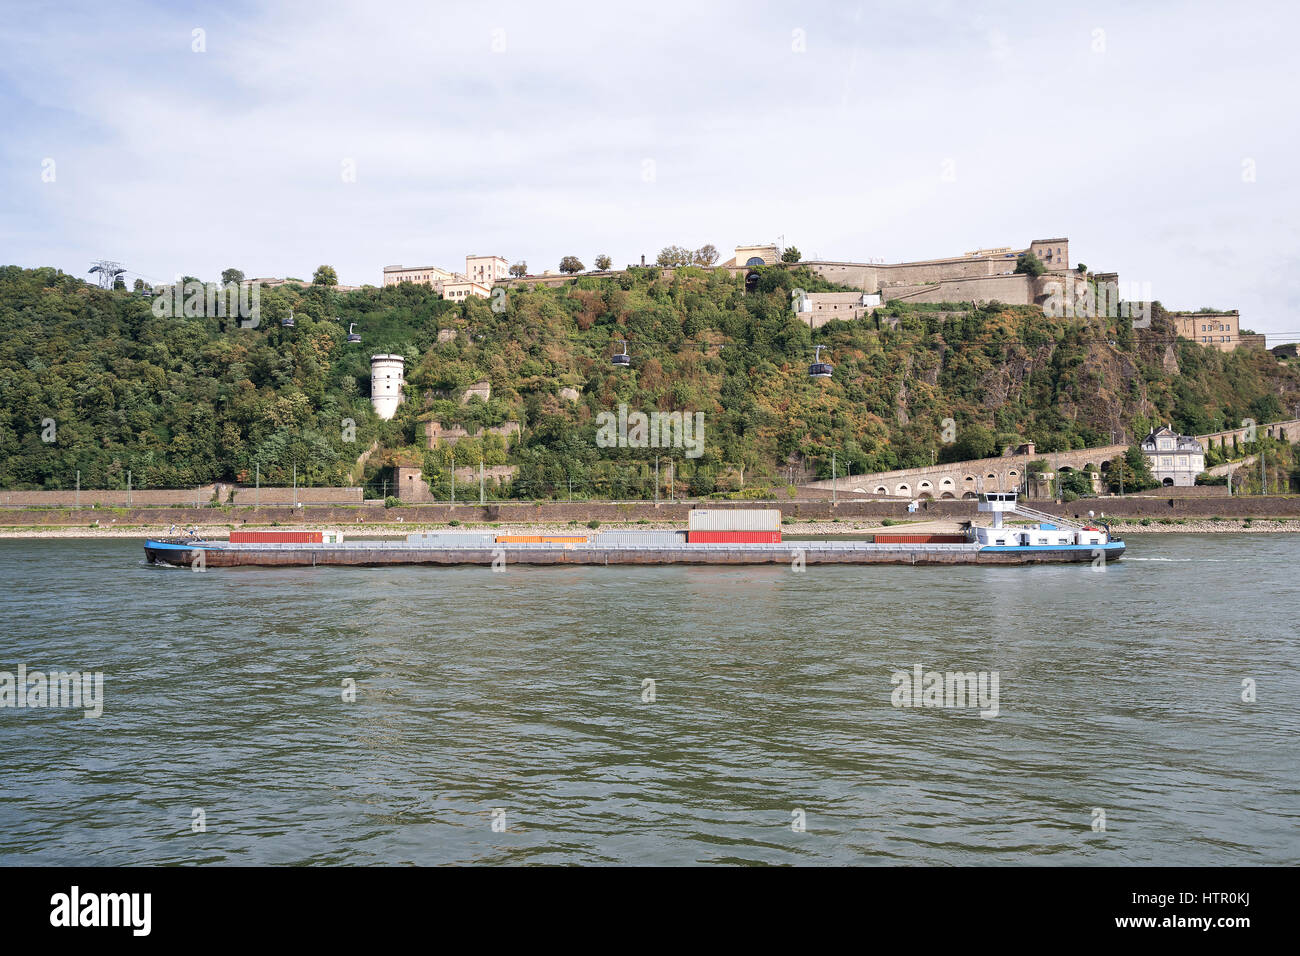 inland container vessel passing fortress Ehrenbreitstein in Koblenz/ Germany - Stock Image